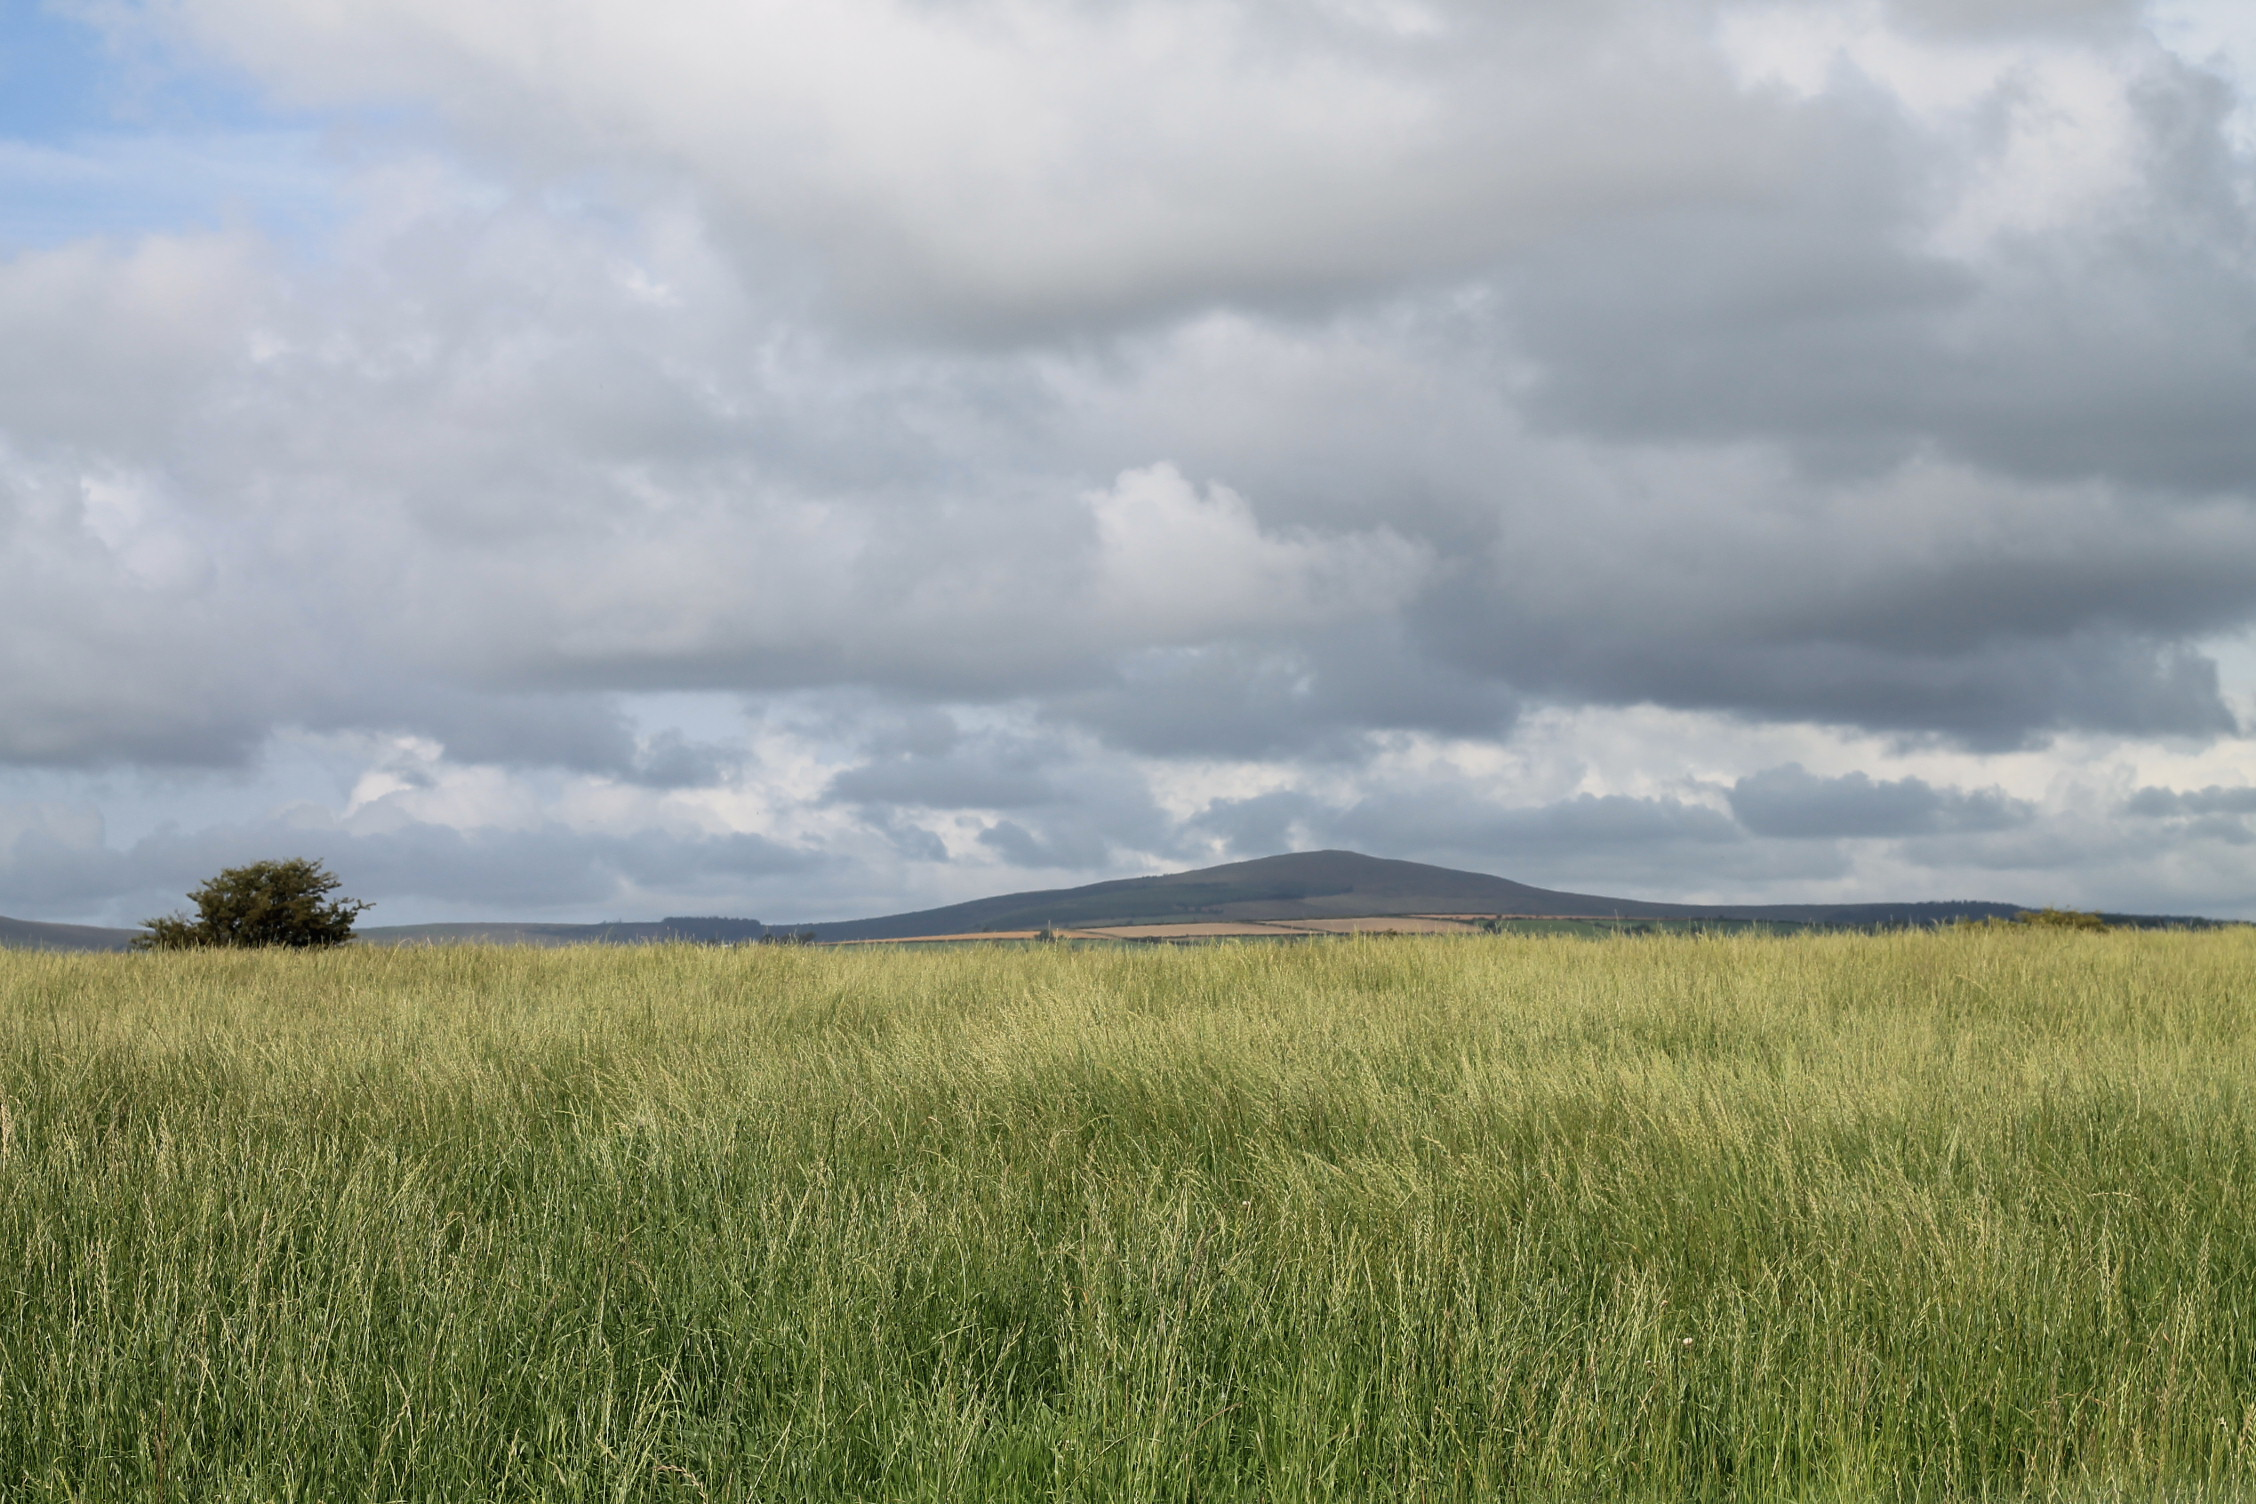 The Preseli Hills from Gelli.